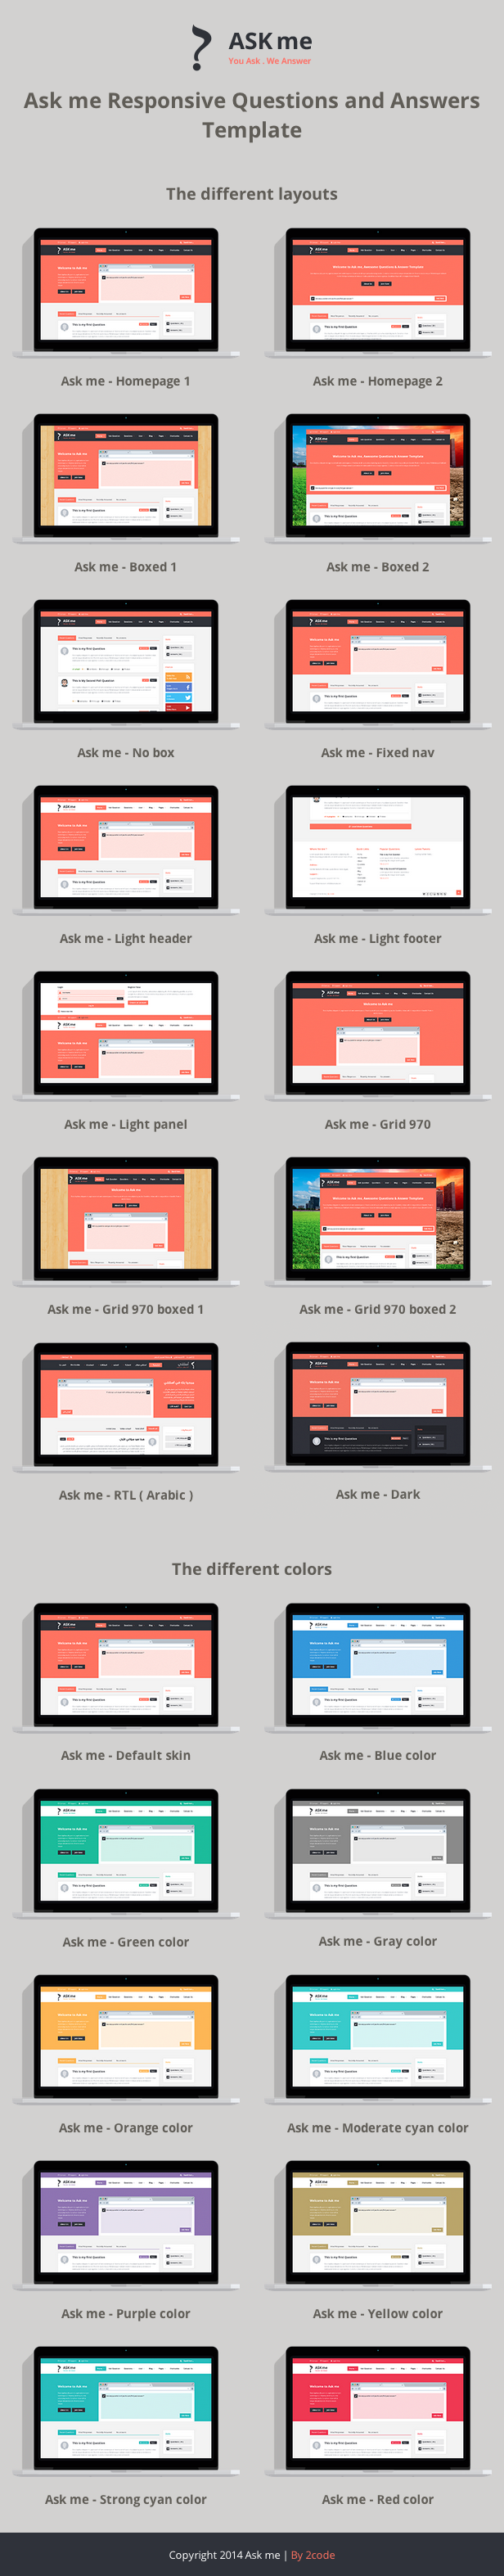 ask me responsive questions and answers template by 2codethemes